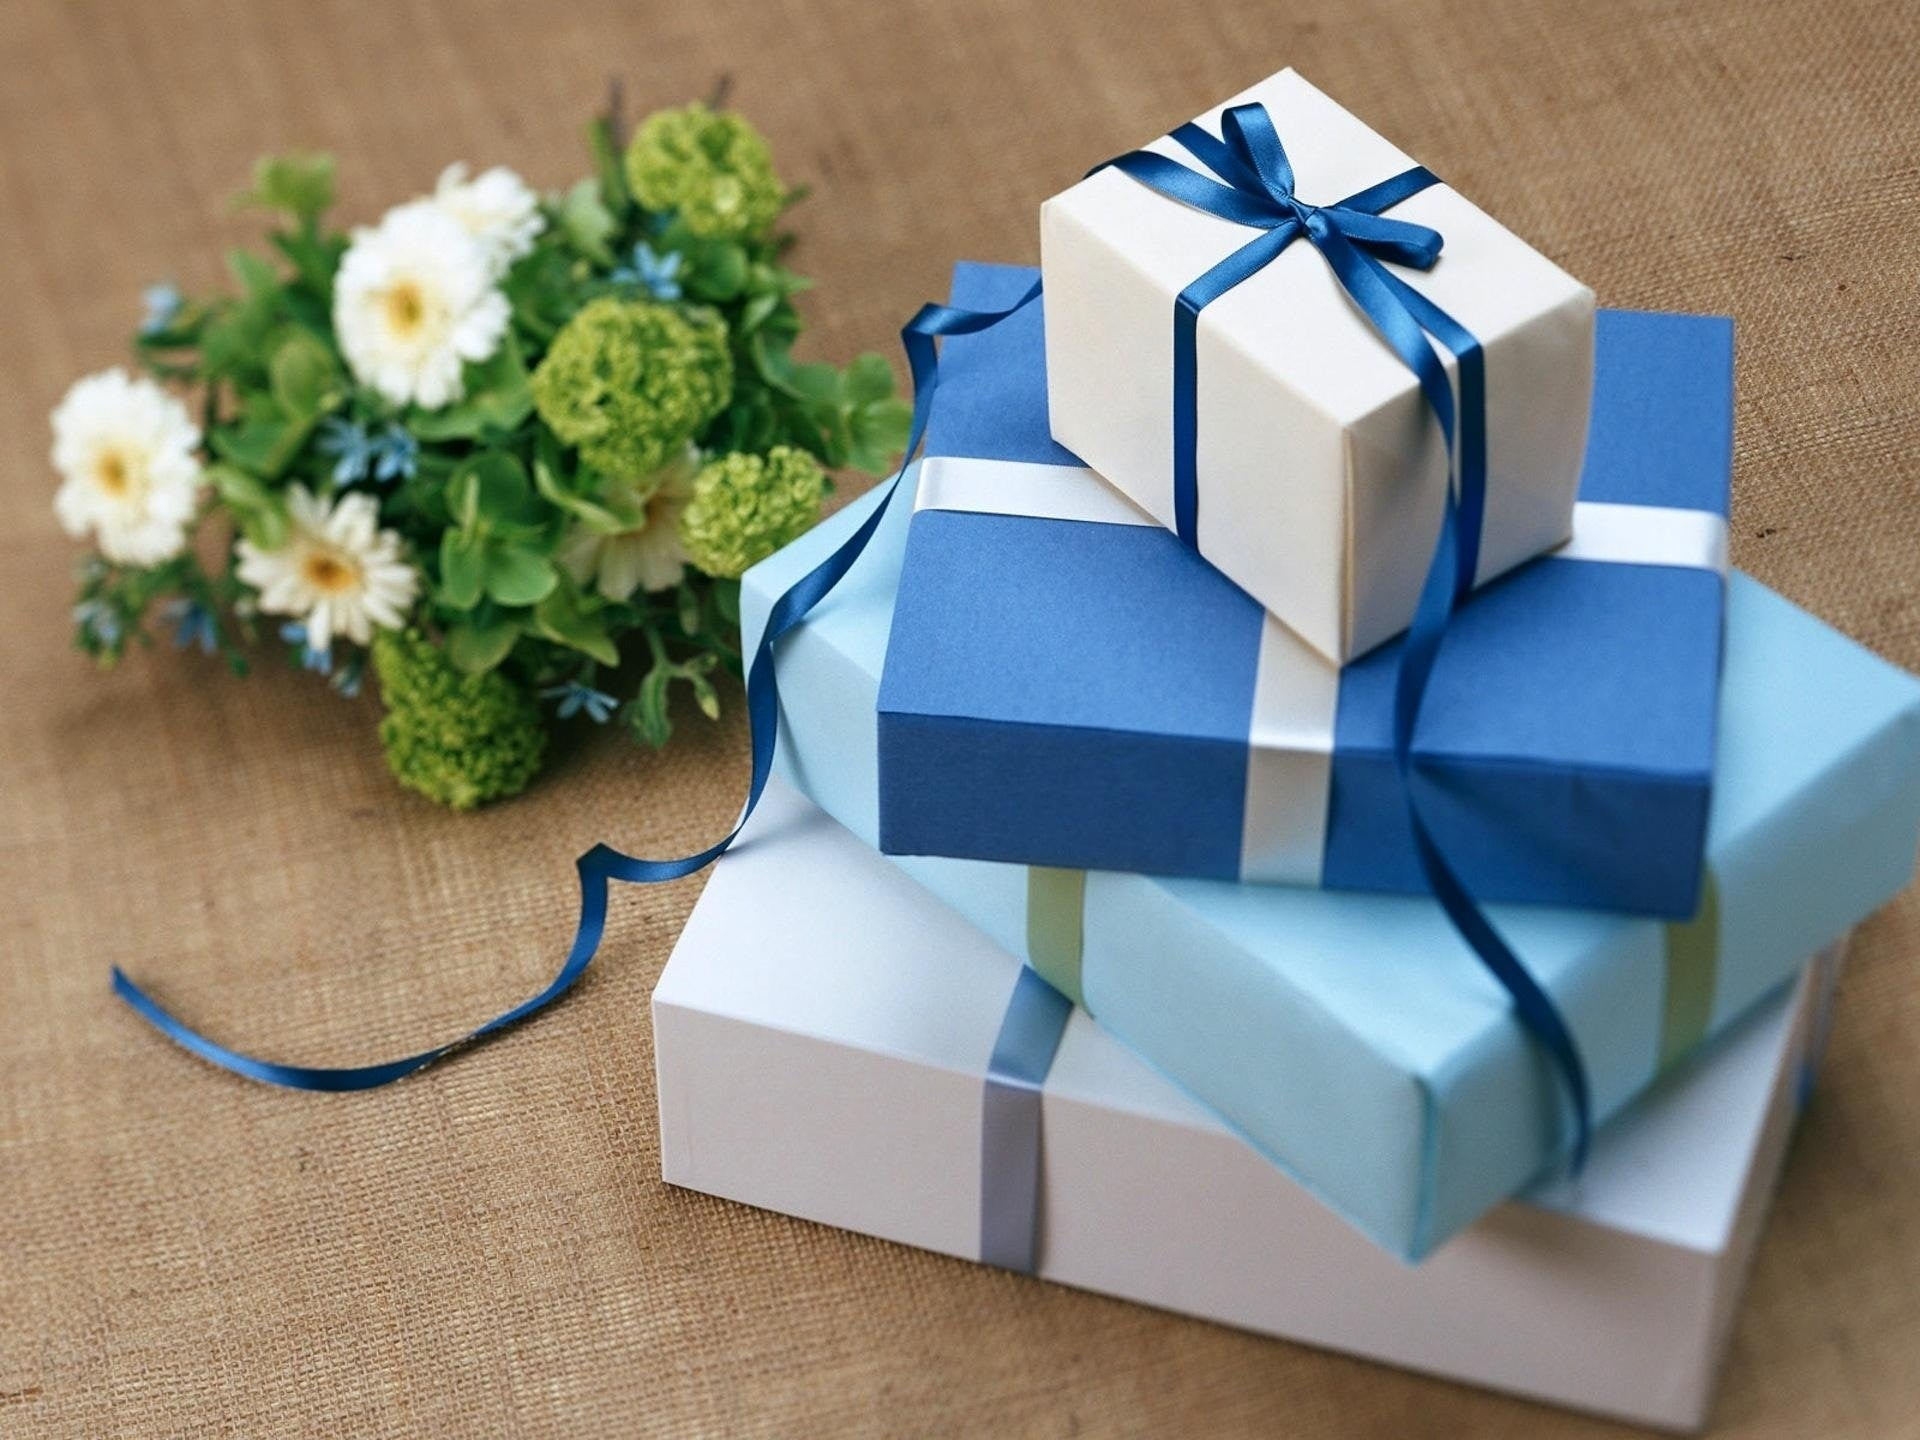 Corporate Gifting & its Benefits